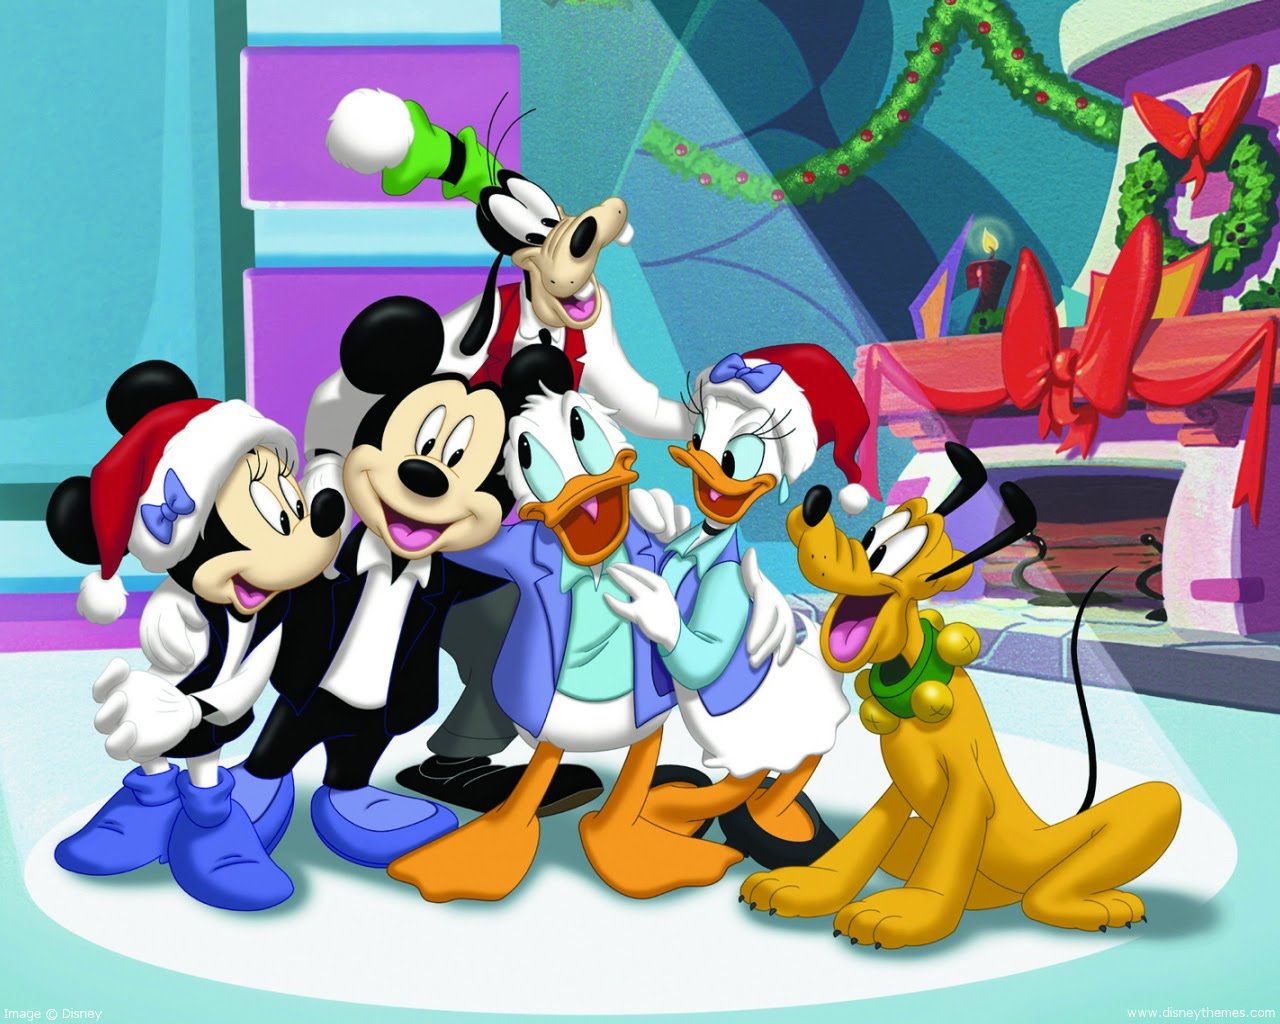 mickeys magical christmas snowed in at the house of mouse is a direct to video movie spin off from the animated television series house of mouse - Mickey Magical Christmas